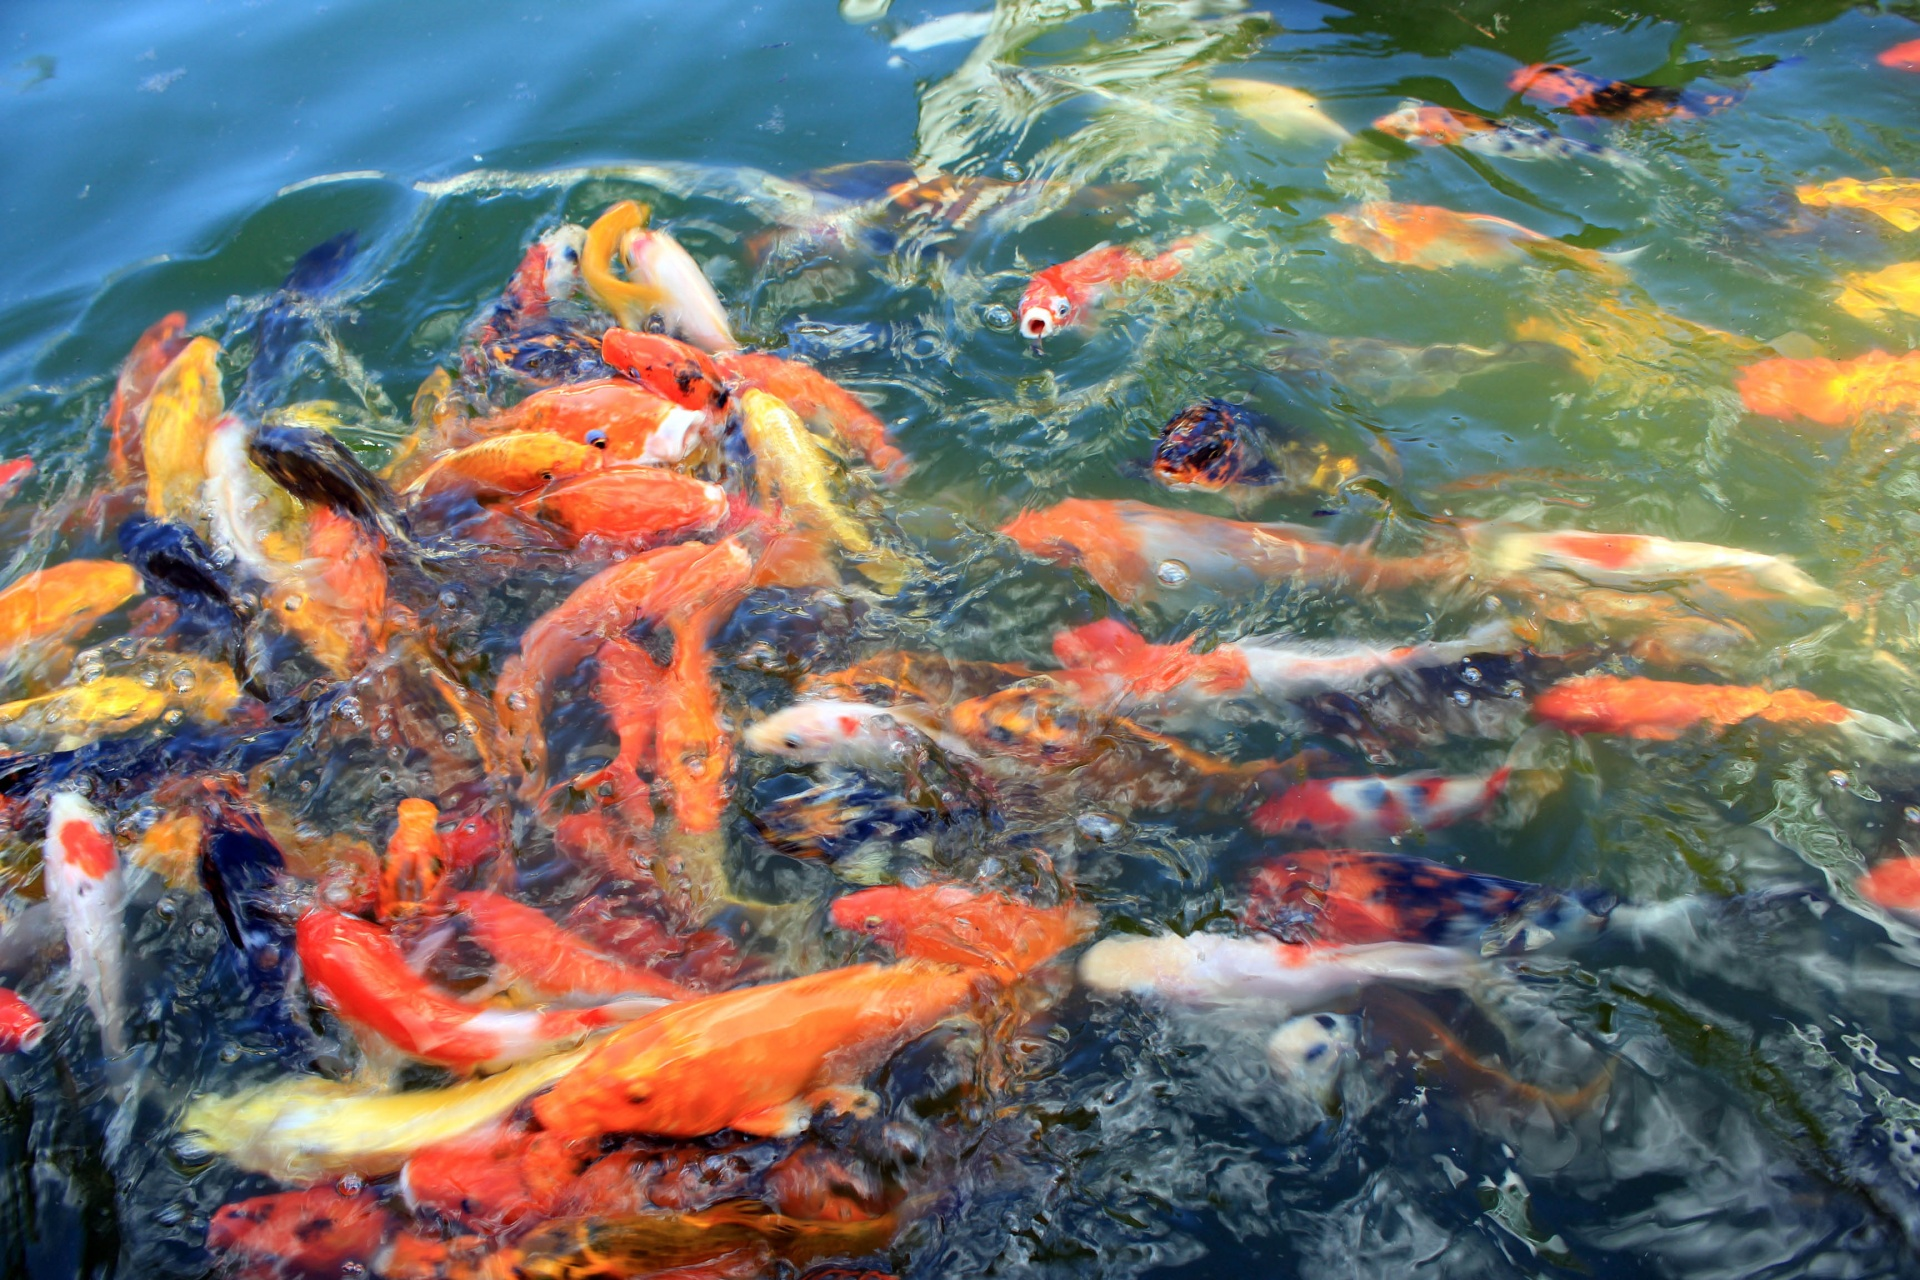 Wallpaper Black And Gold Cute Koi Fish Free Stock Photo Public Domain Pictures